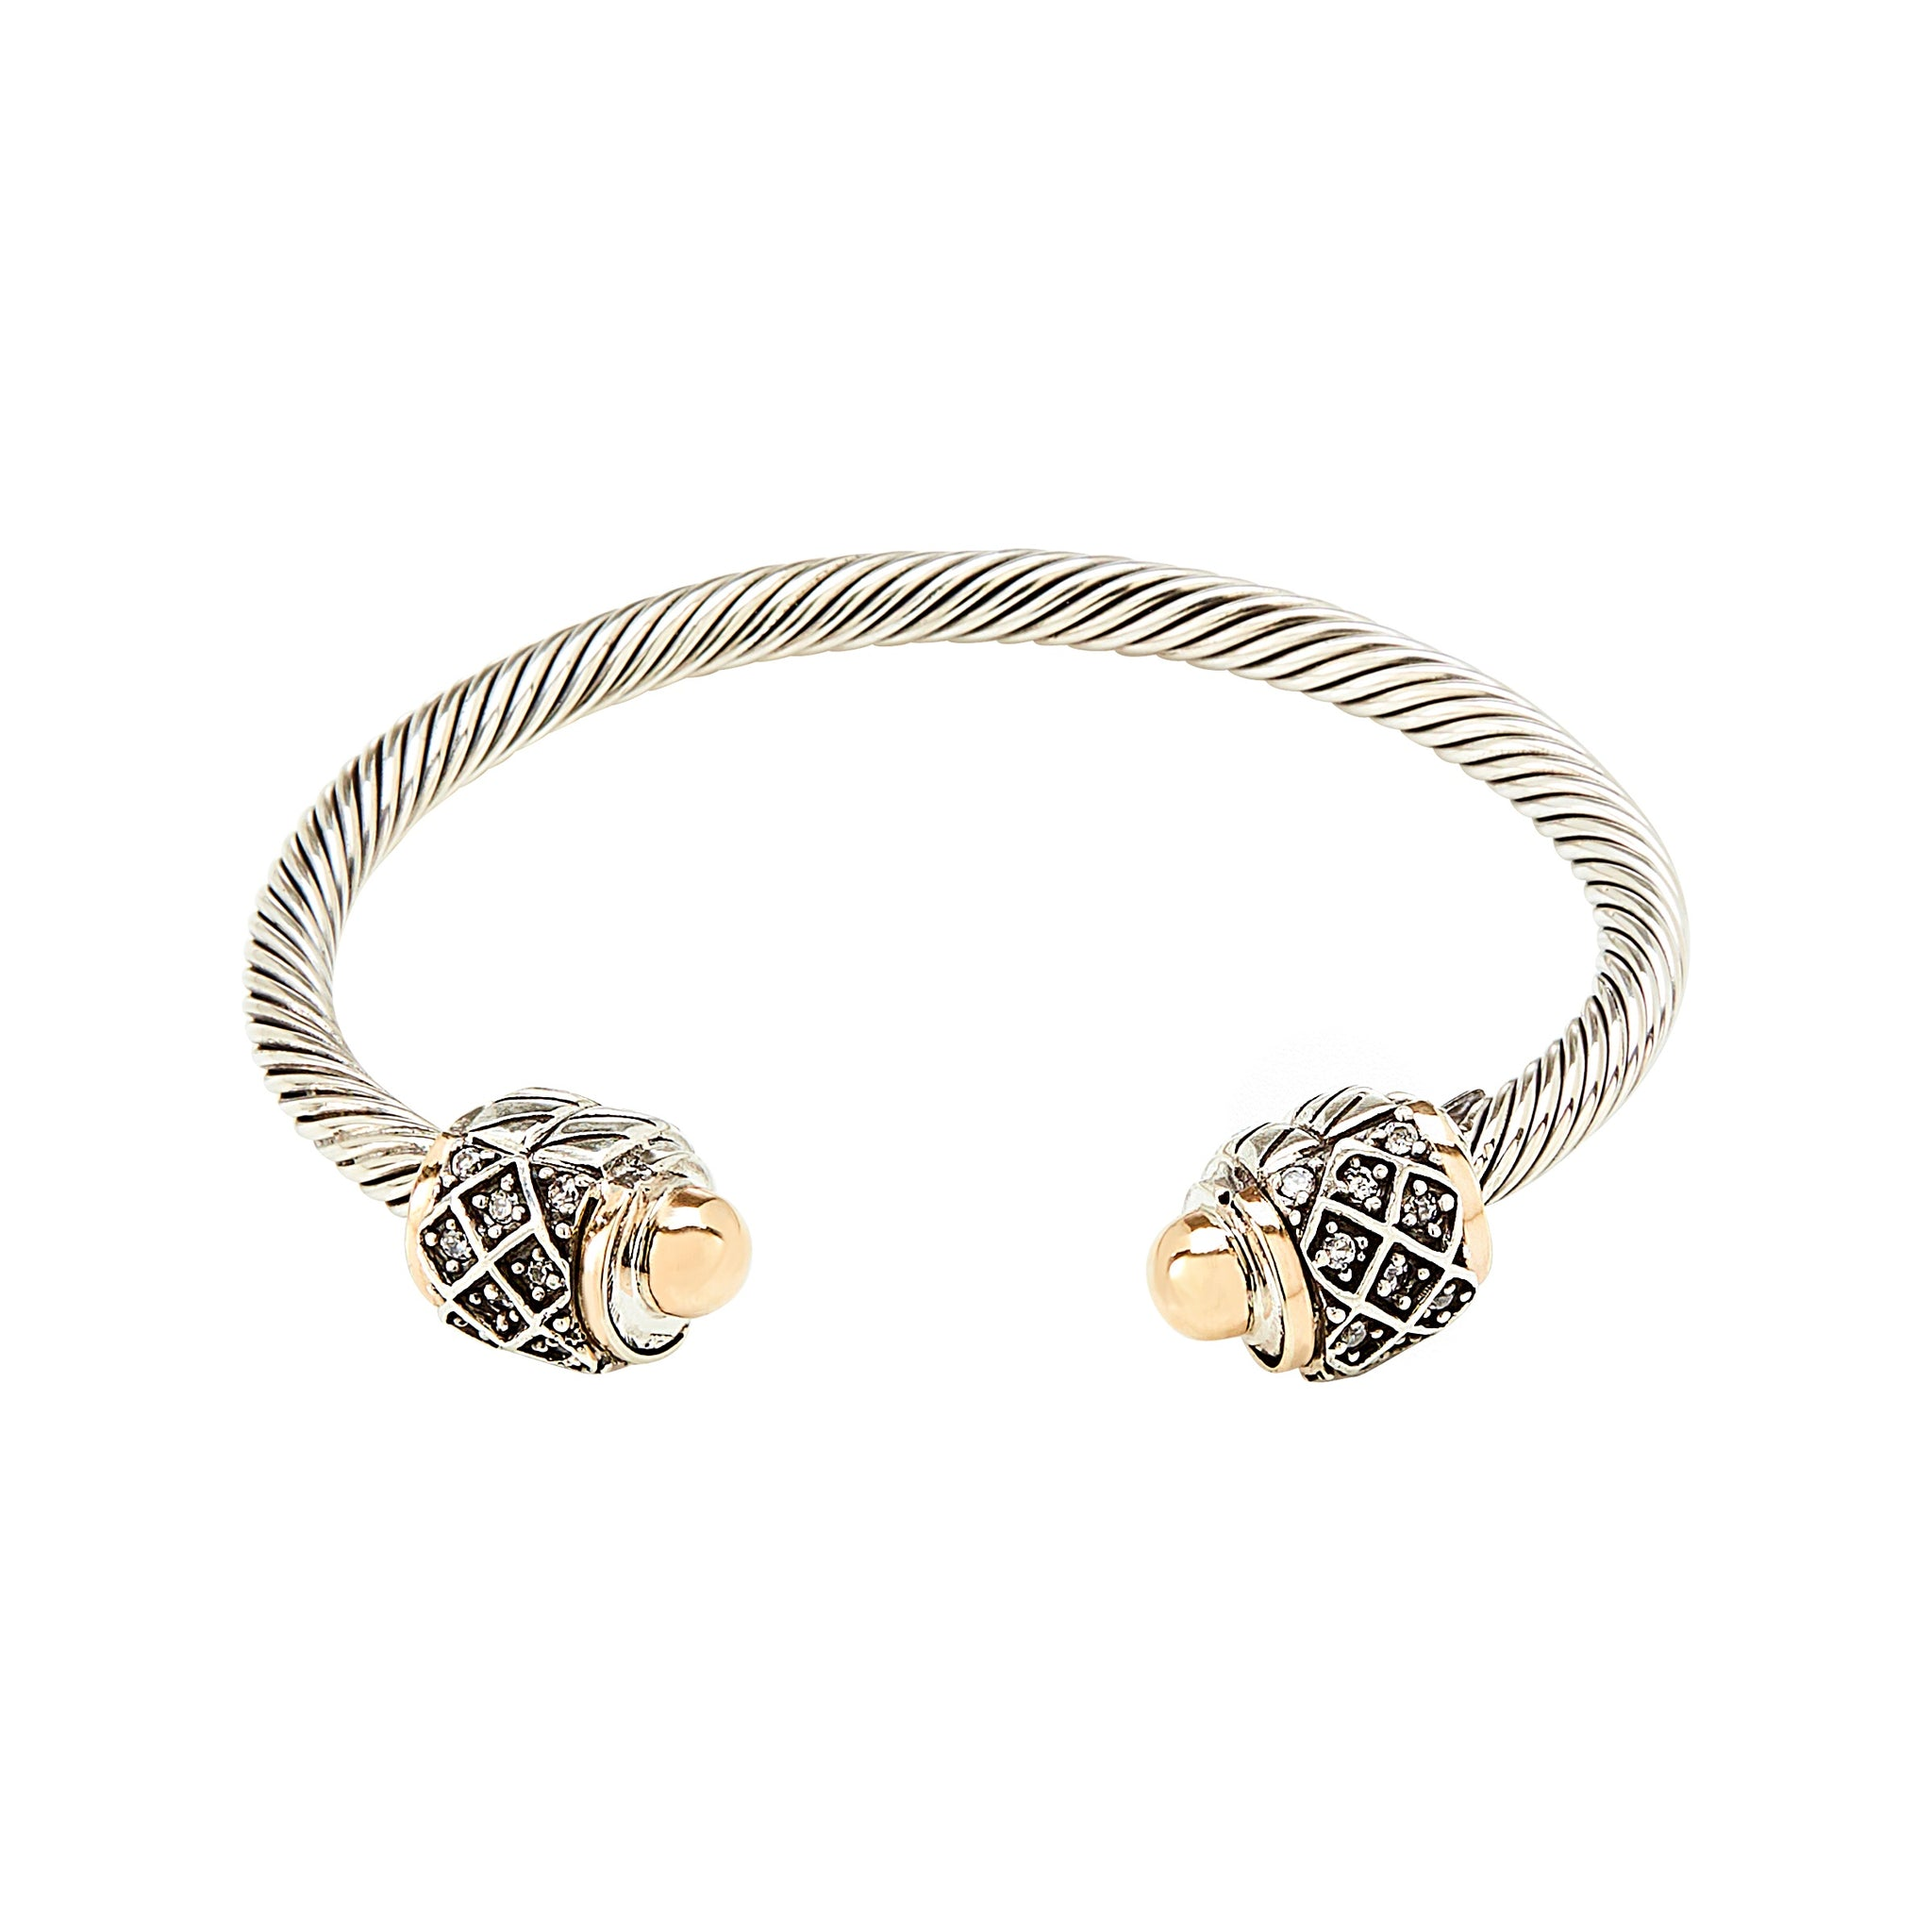 3b92f158ee8 Bicolour Criss Cross Twisted Cuff Bracelet - Sterling Silver and 14k Solid  Gold